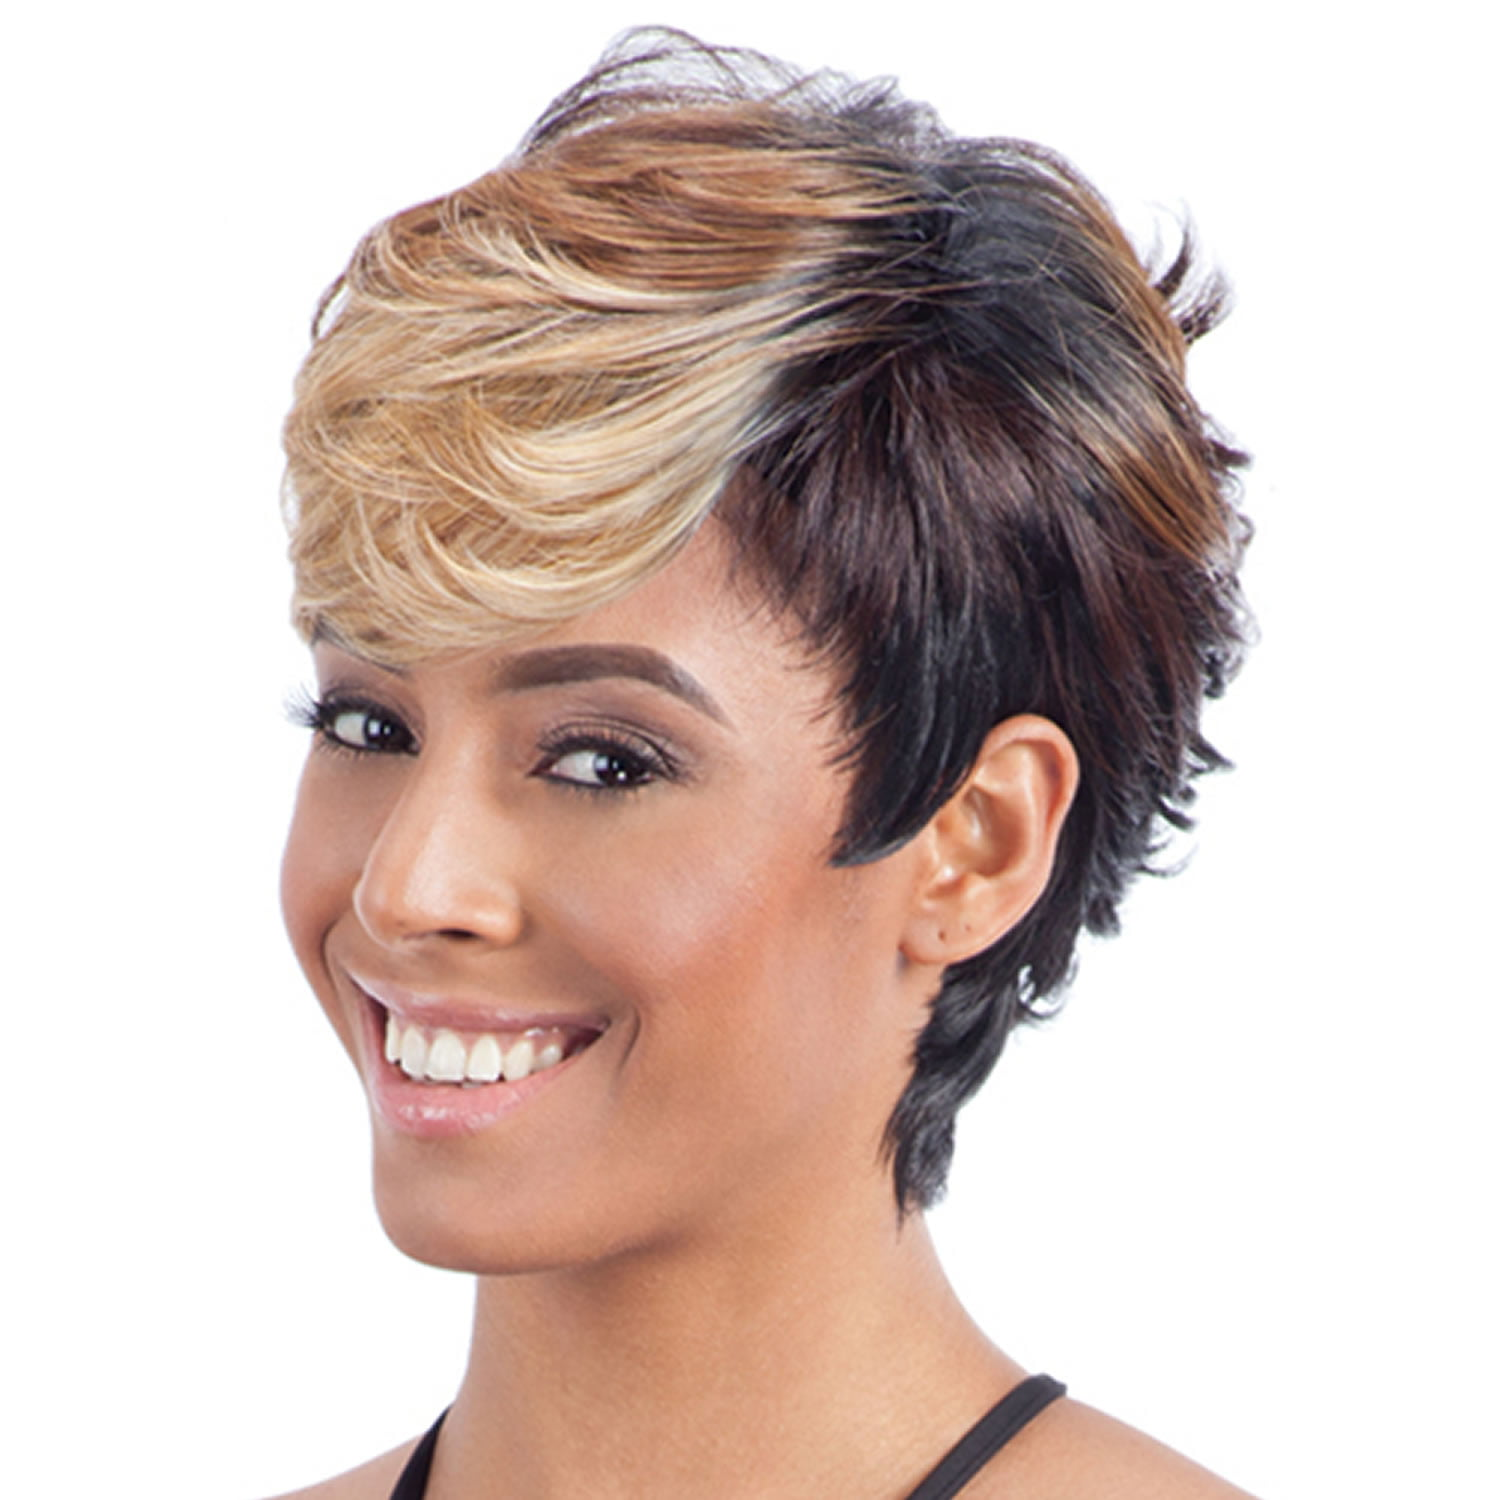 2018 Short Haircuts for Black Women – 57 Pixie Short Black Hair ...